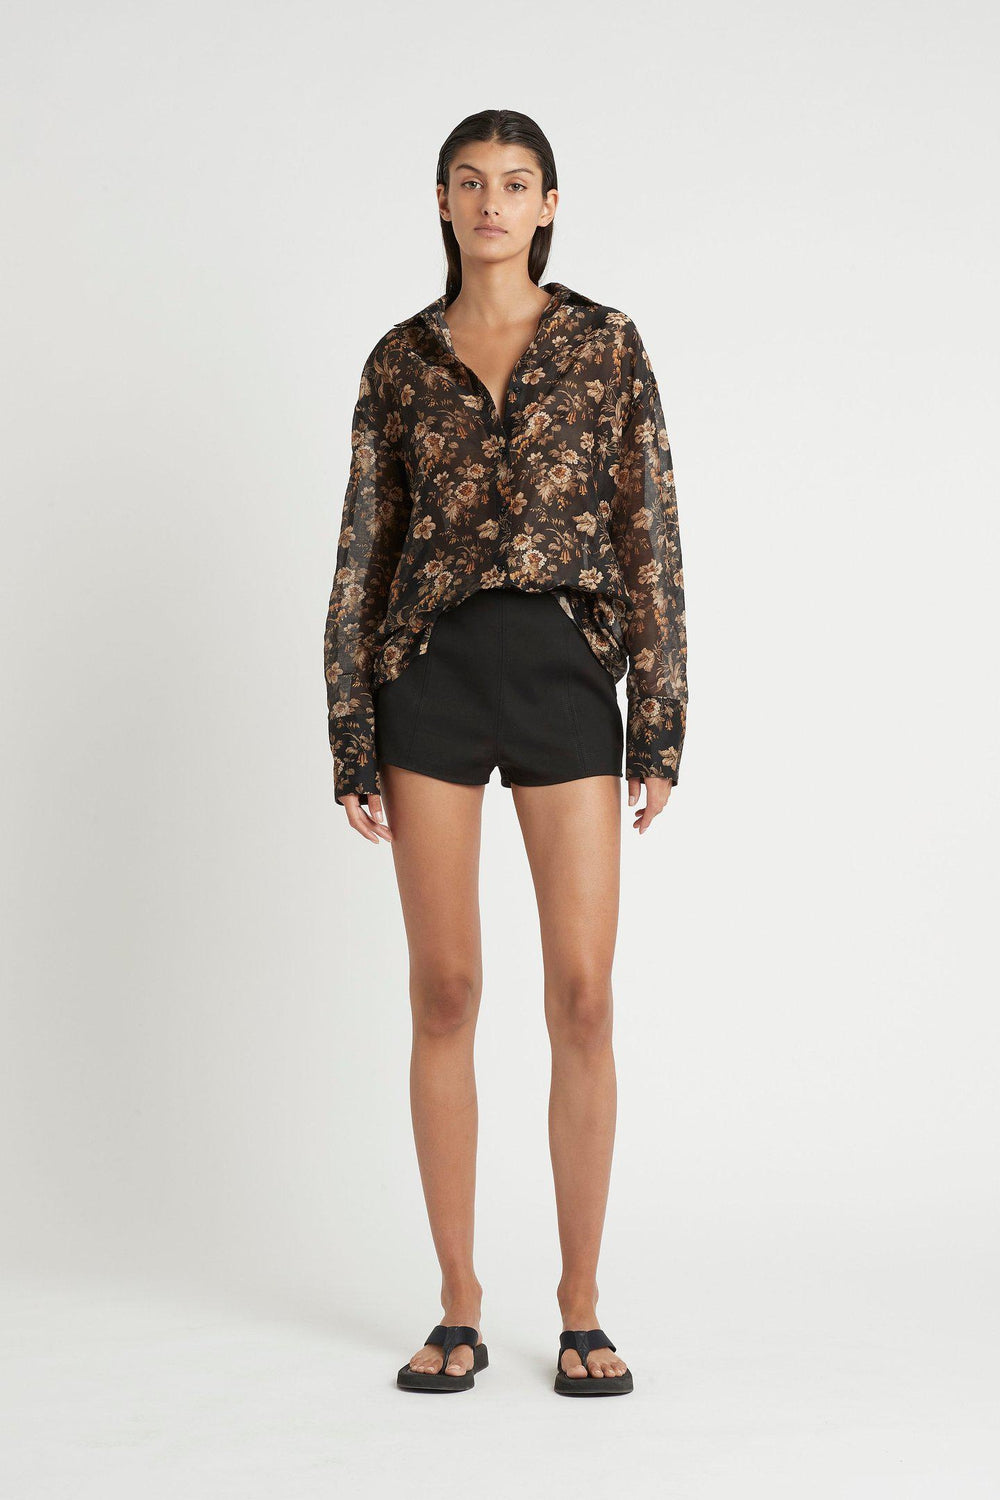 ANDRE PANELLED SHORT / BLACK | SIR | Mad About The Boy